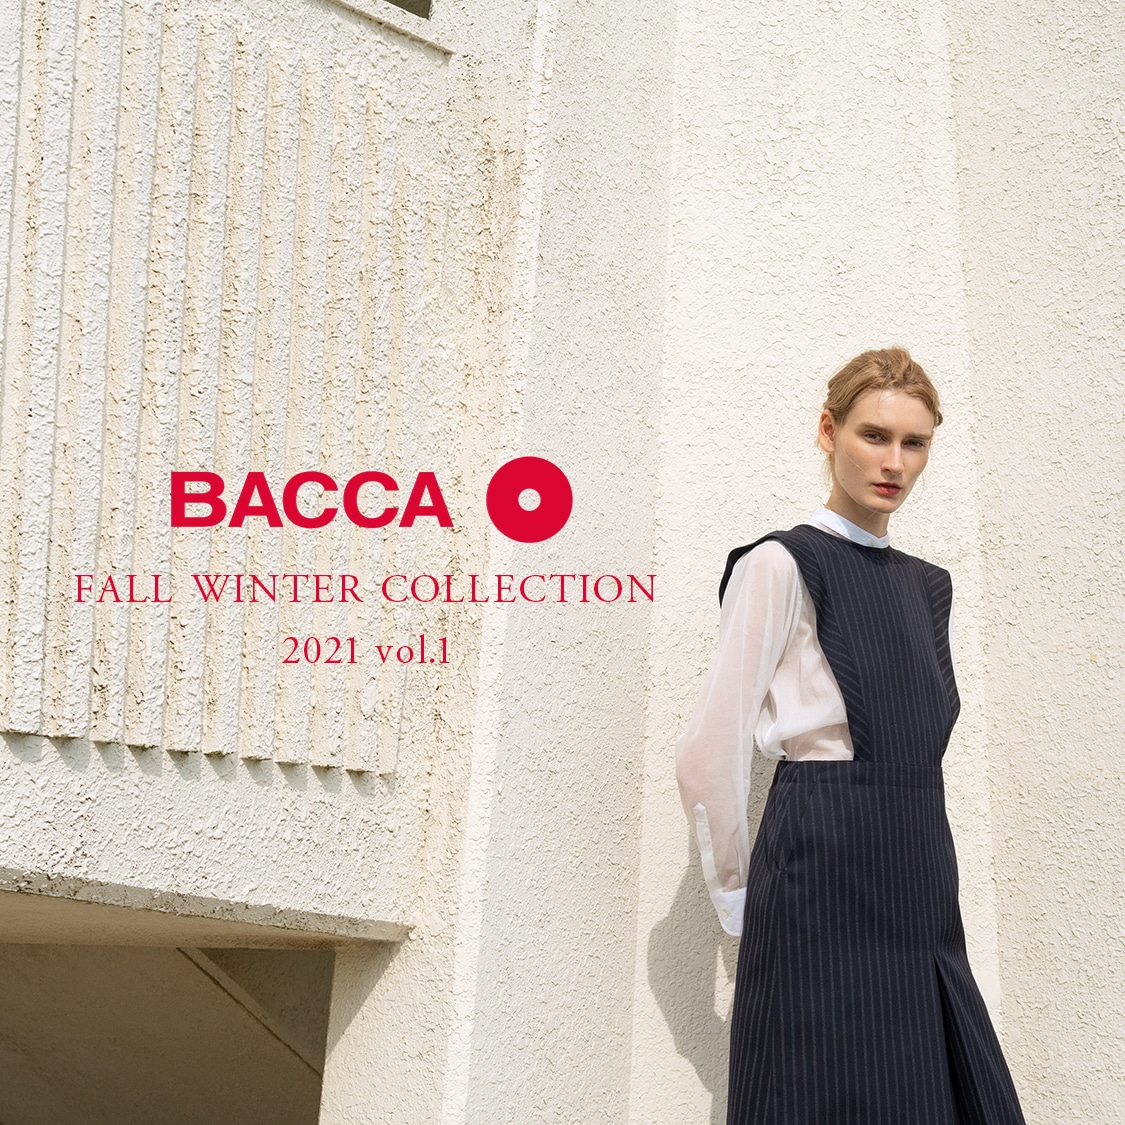 BACCA FALL WINTER COLLECTION 2021